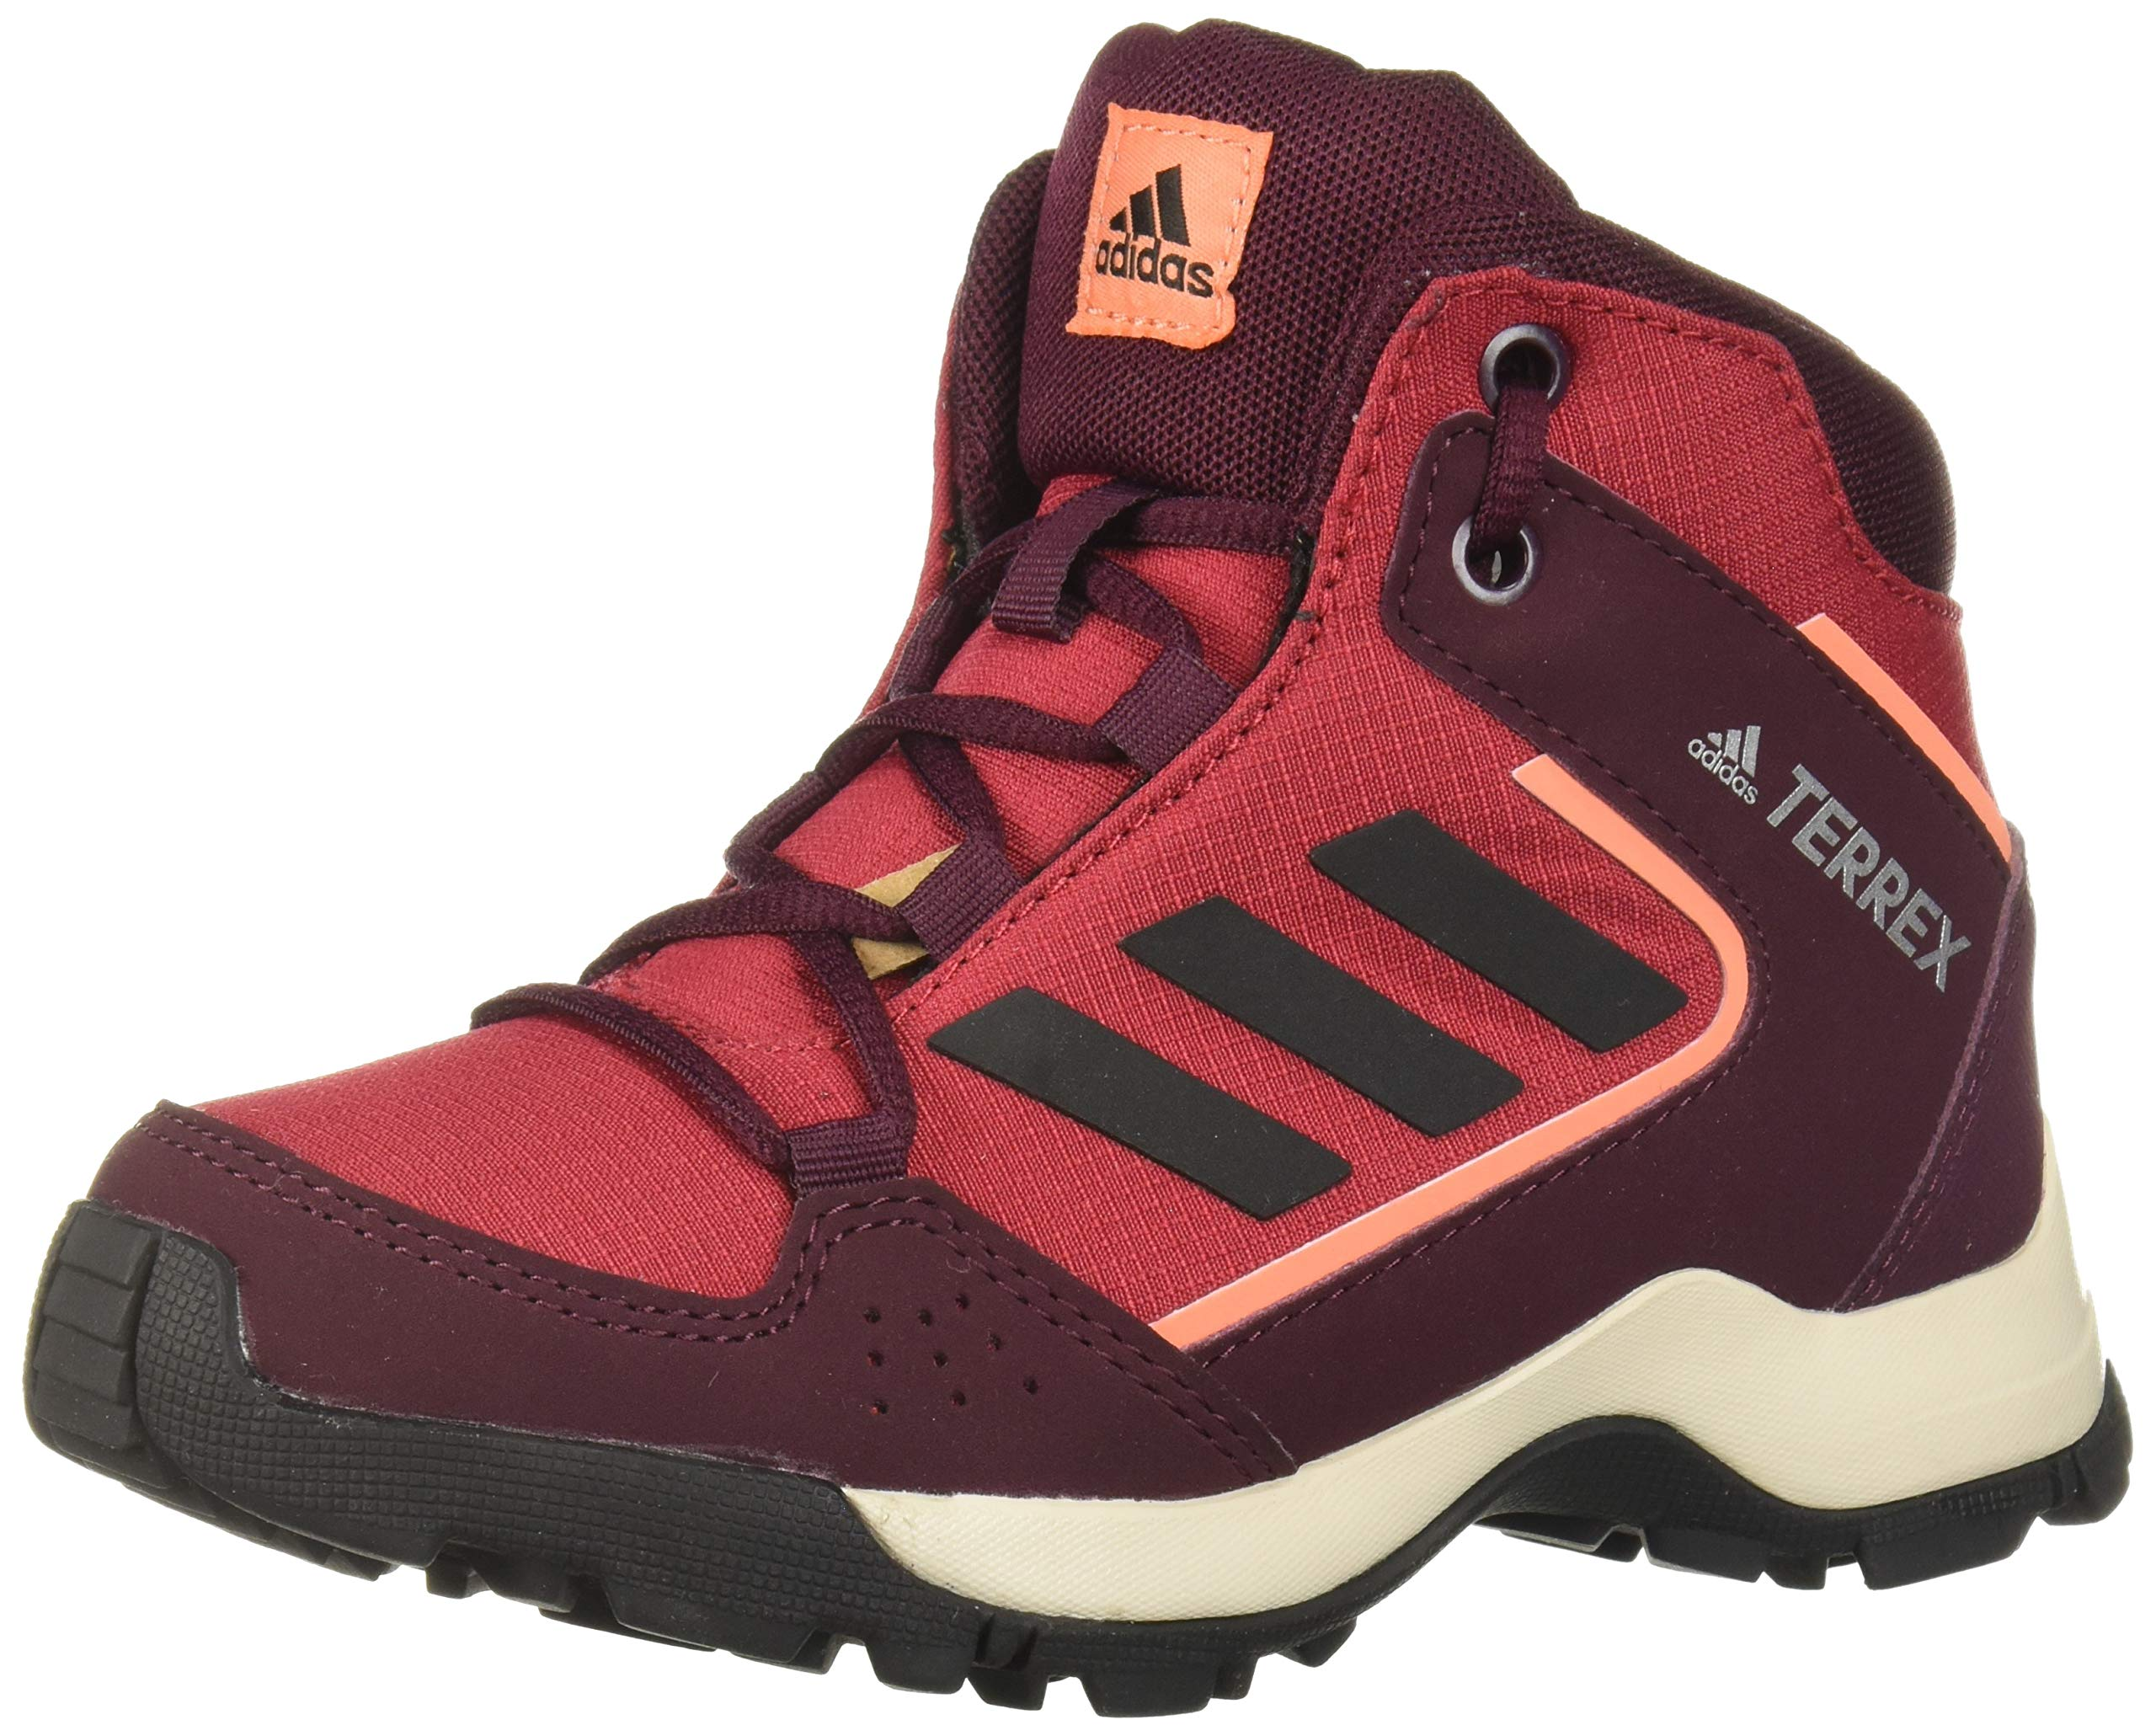 adidas outdoor Hyperhiker Hiking Boot Active Maroon/Black/Semi Coral 2.5 Child US Big Kid by adidas outdoor